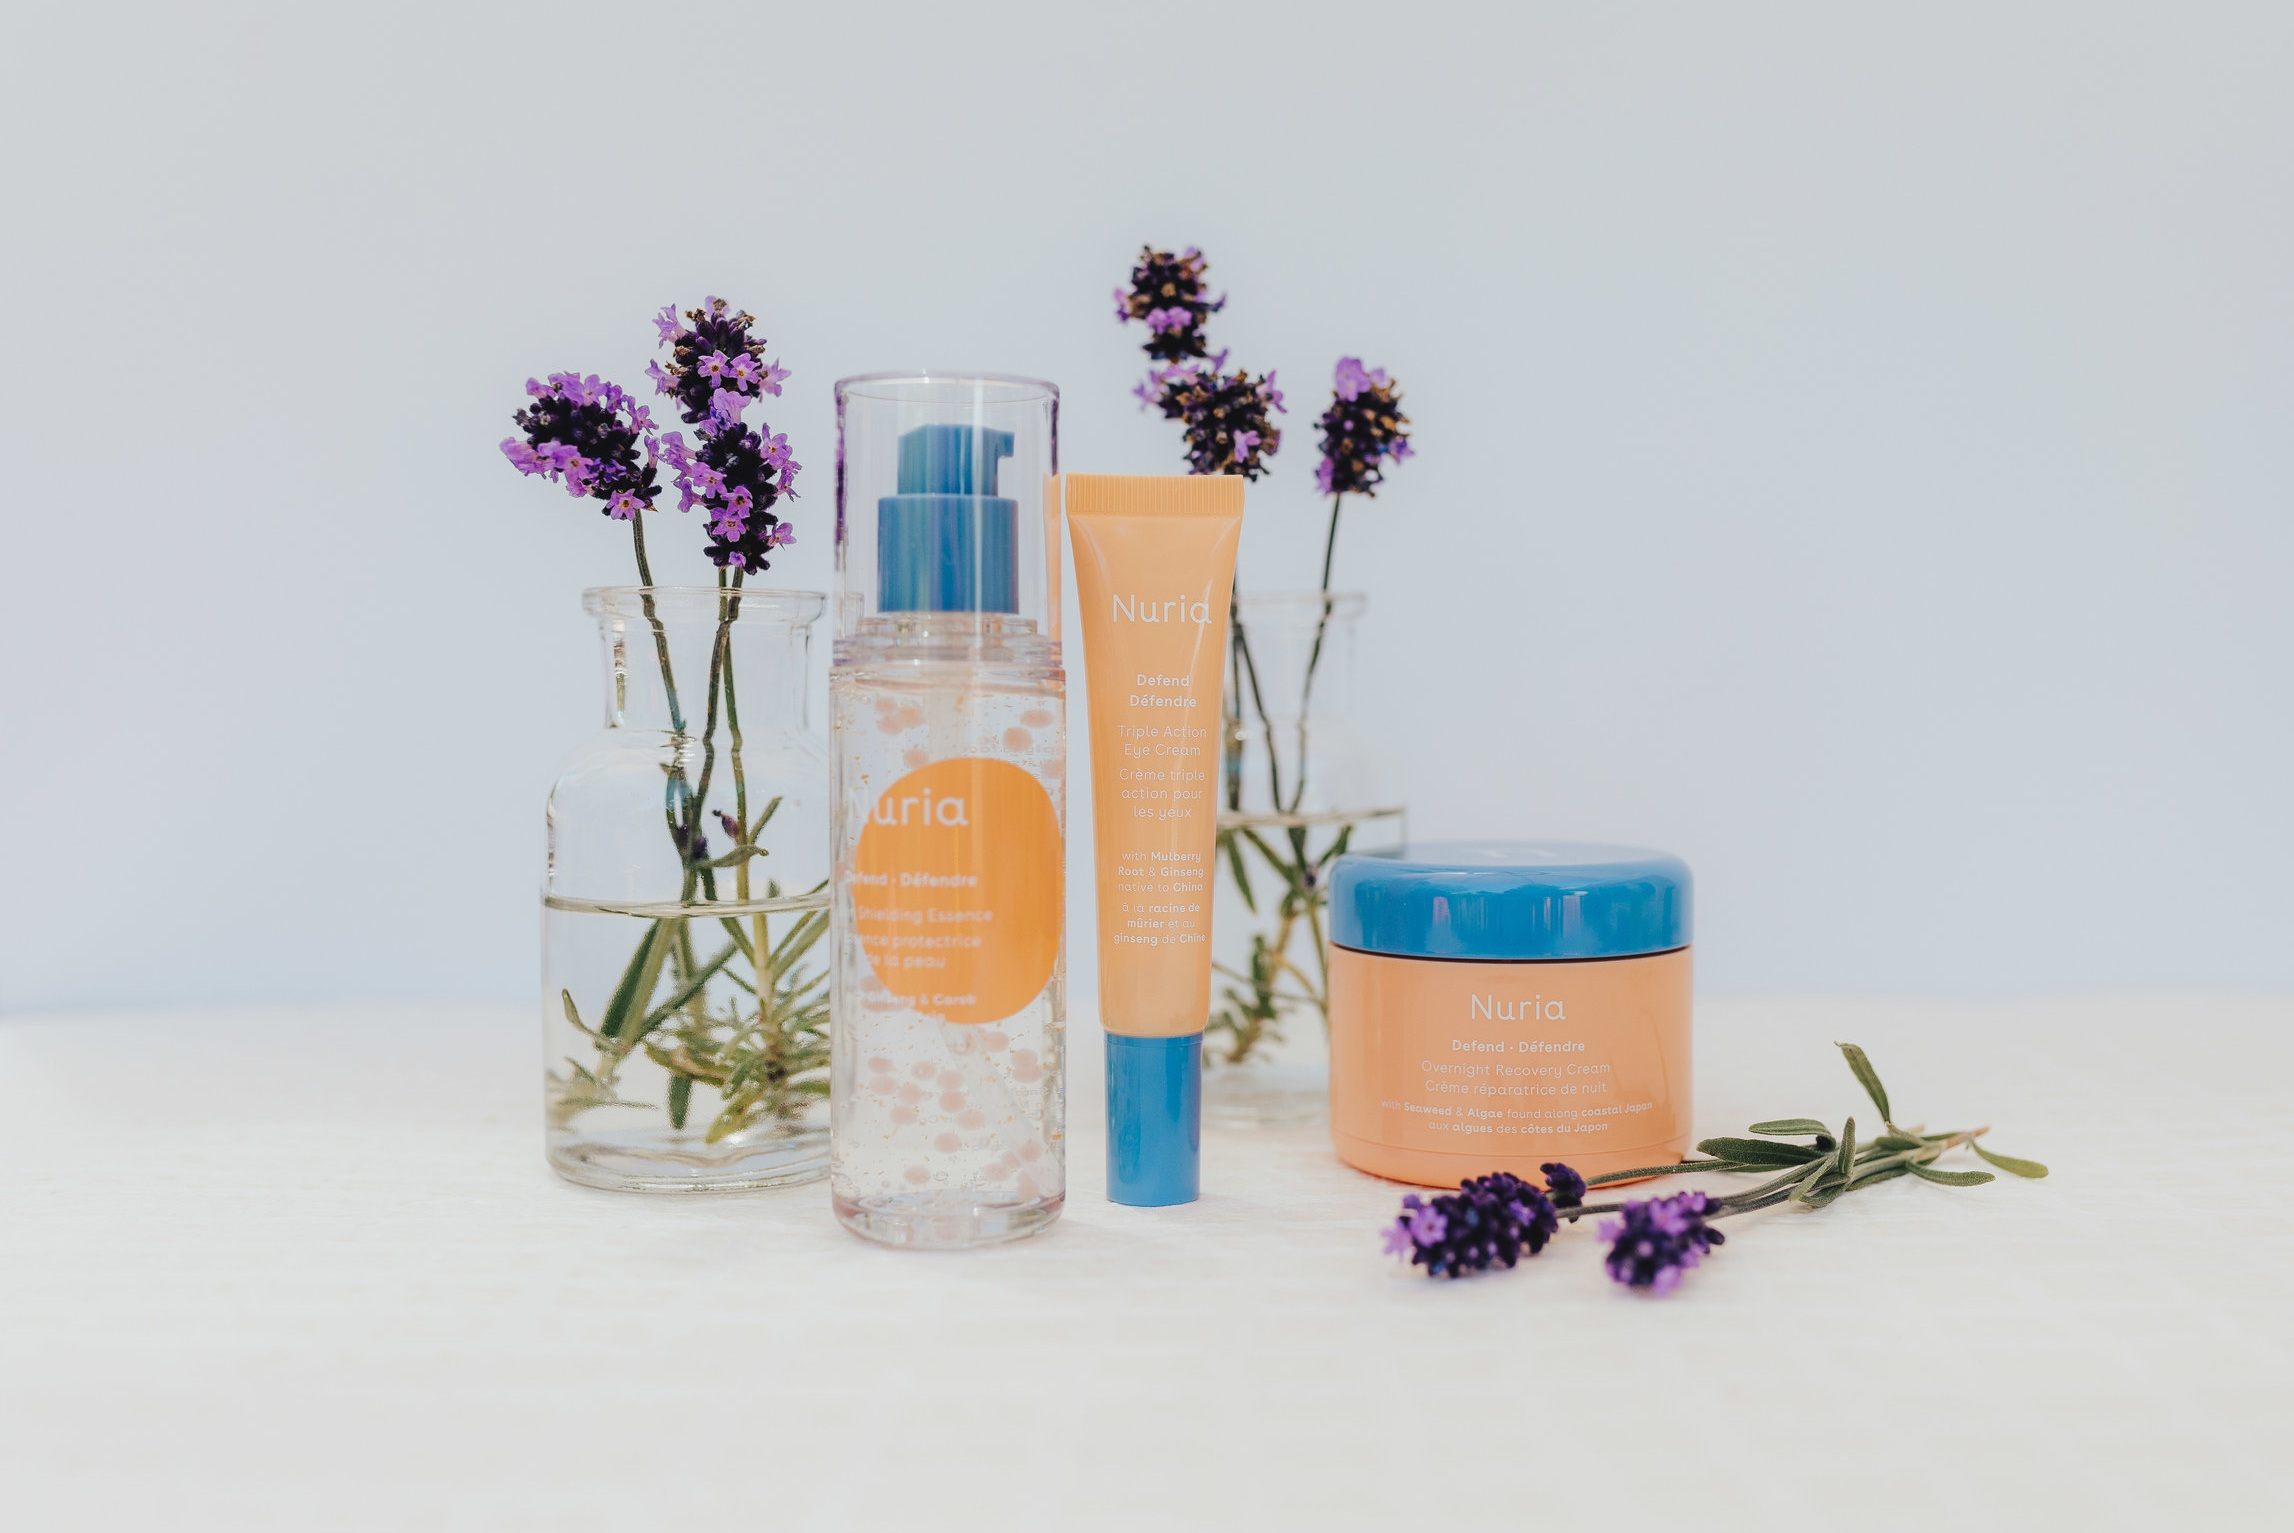 Nuria Beauty Clean Skincare